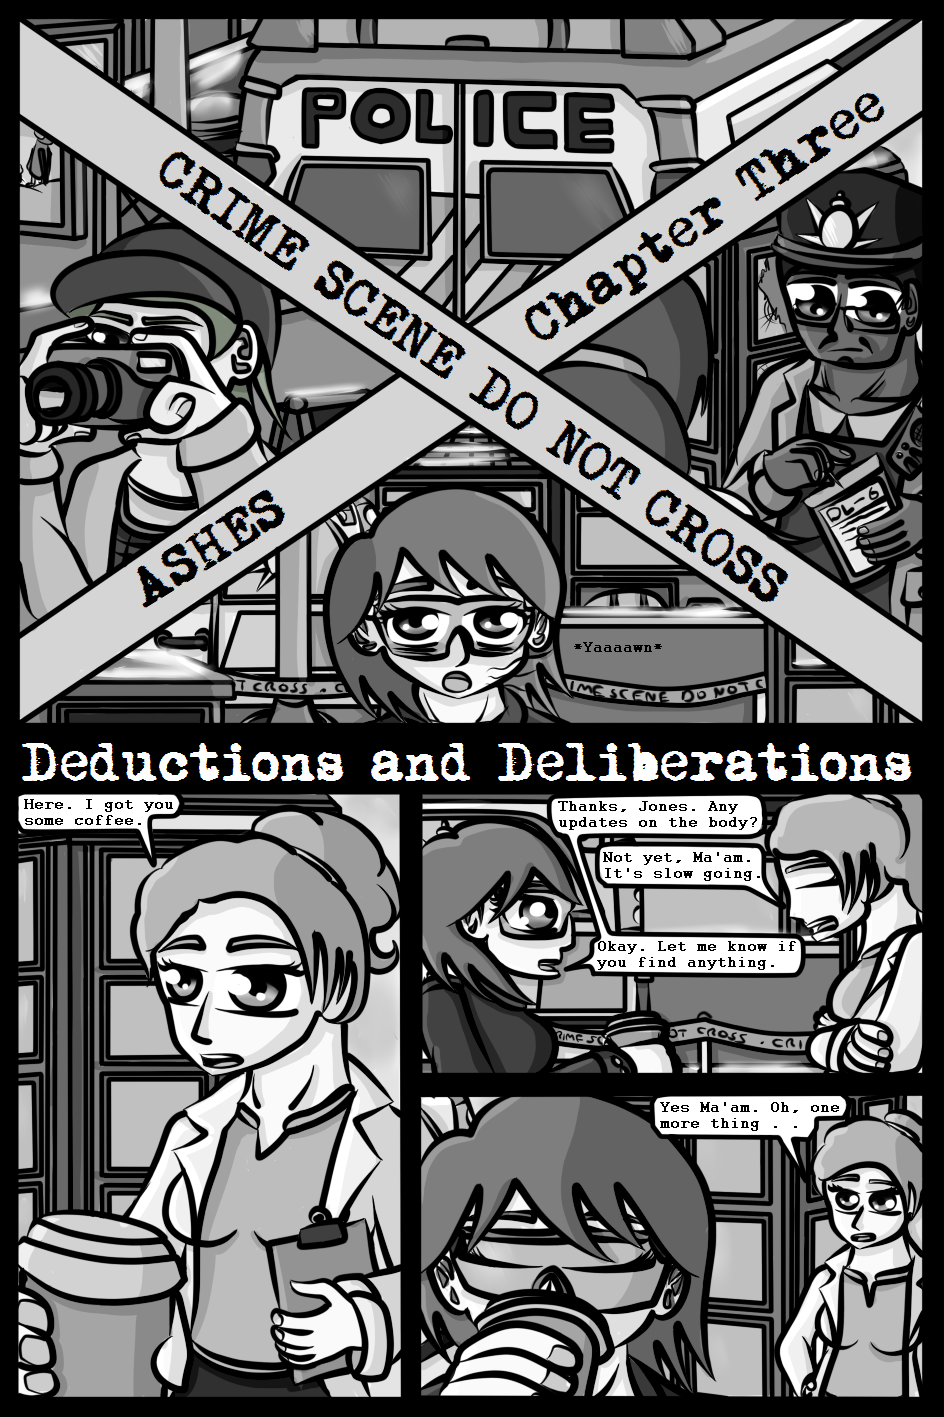 Deductions and Deliberations